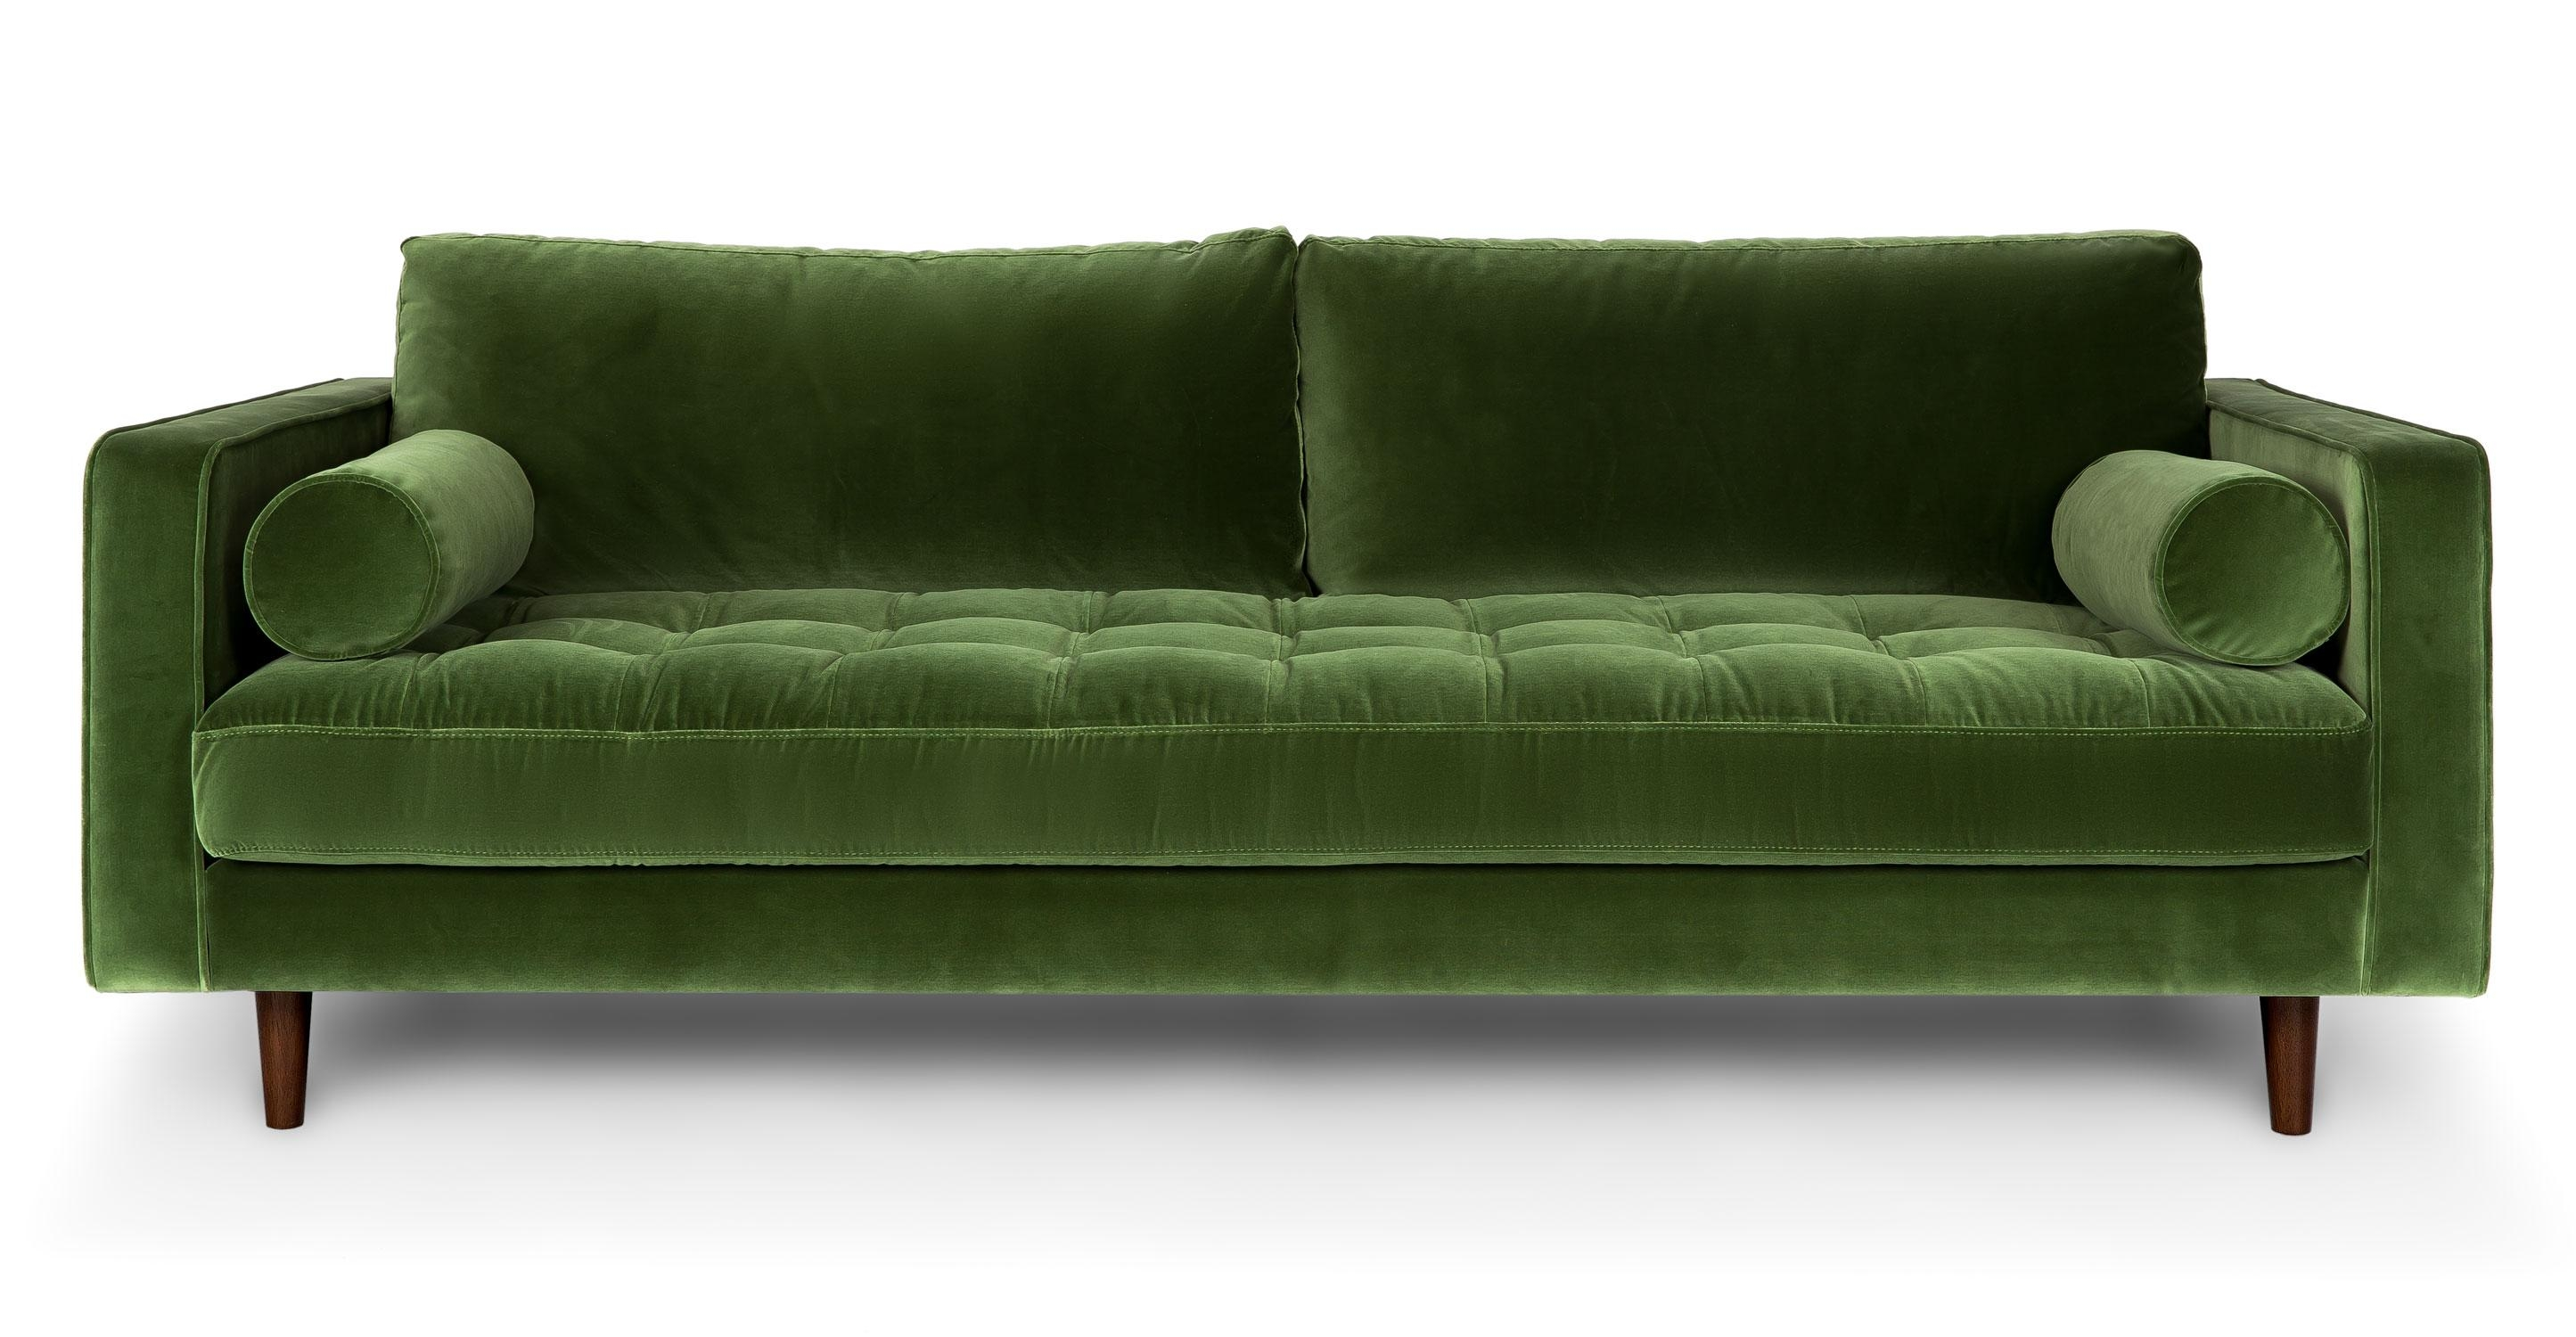 Scandinavian Sofa Green – Ftfpgh Throughout Green Sofas (View 9 of 20)